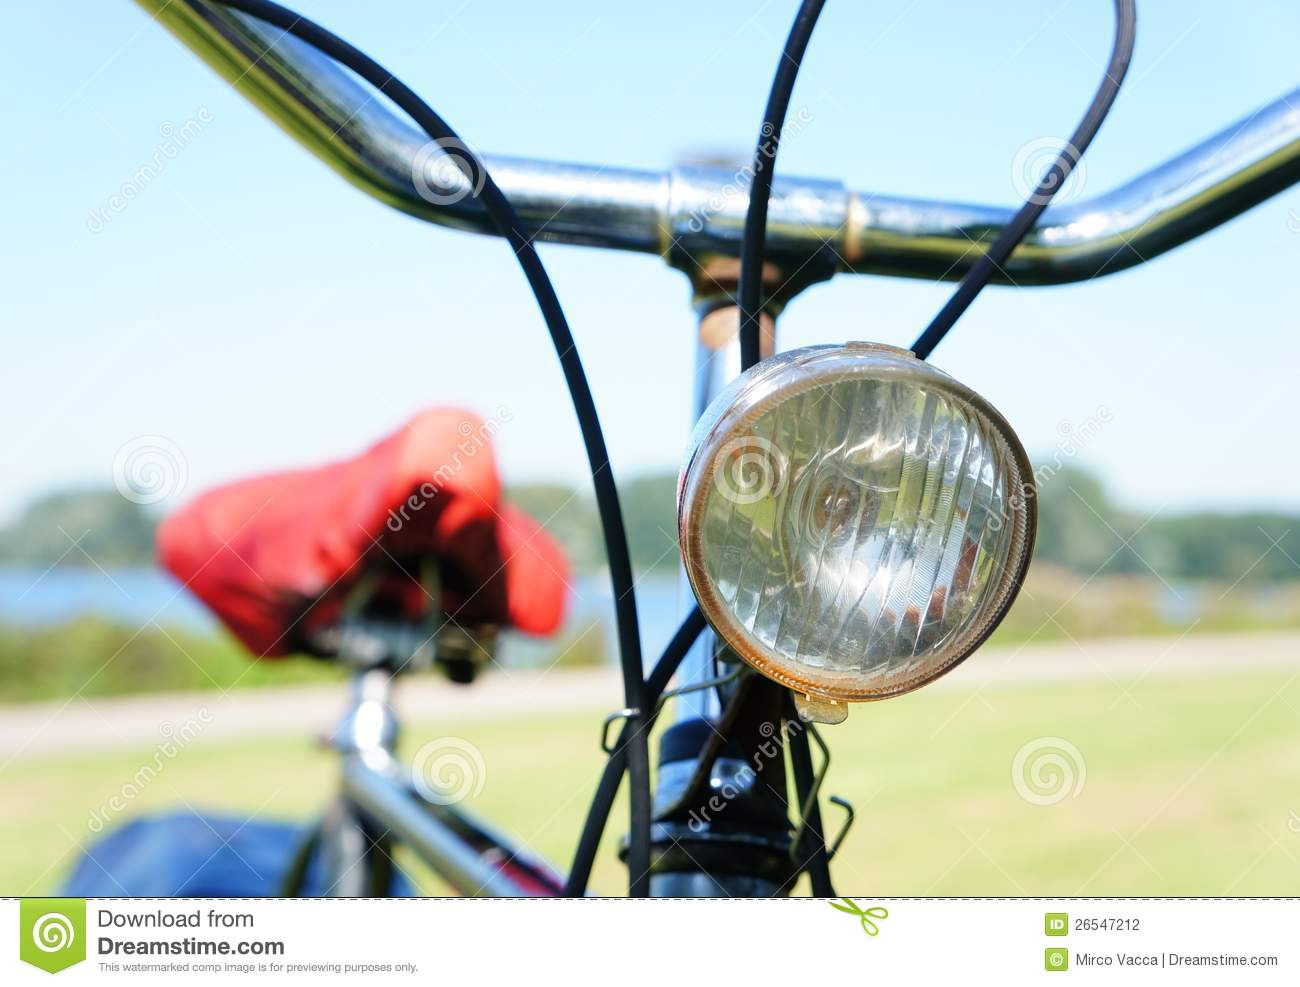 Bicycle Lamp Stock Photography - Image: 26547212